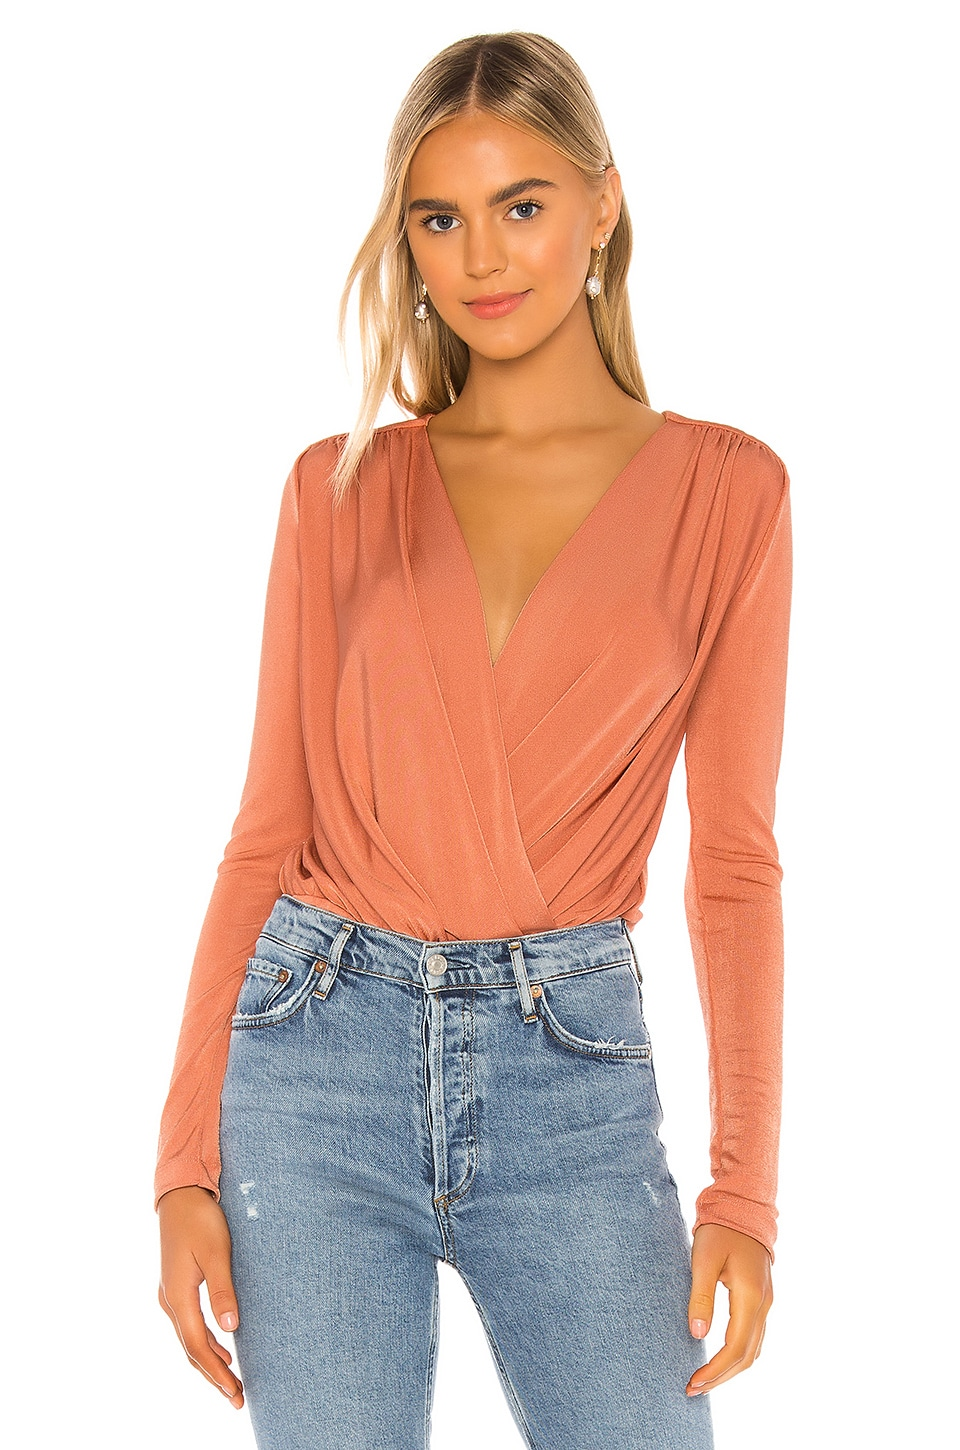 Turnt Bodysuit                     Free People 7